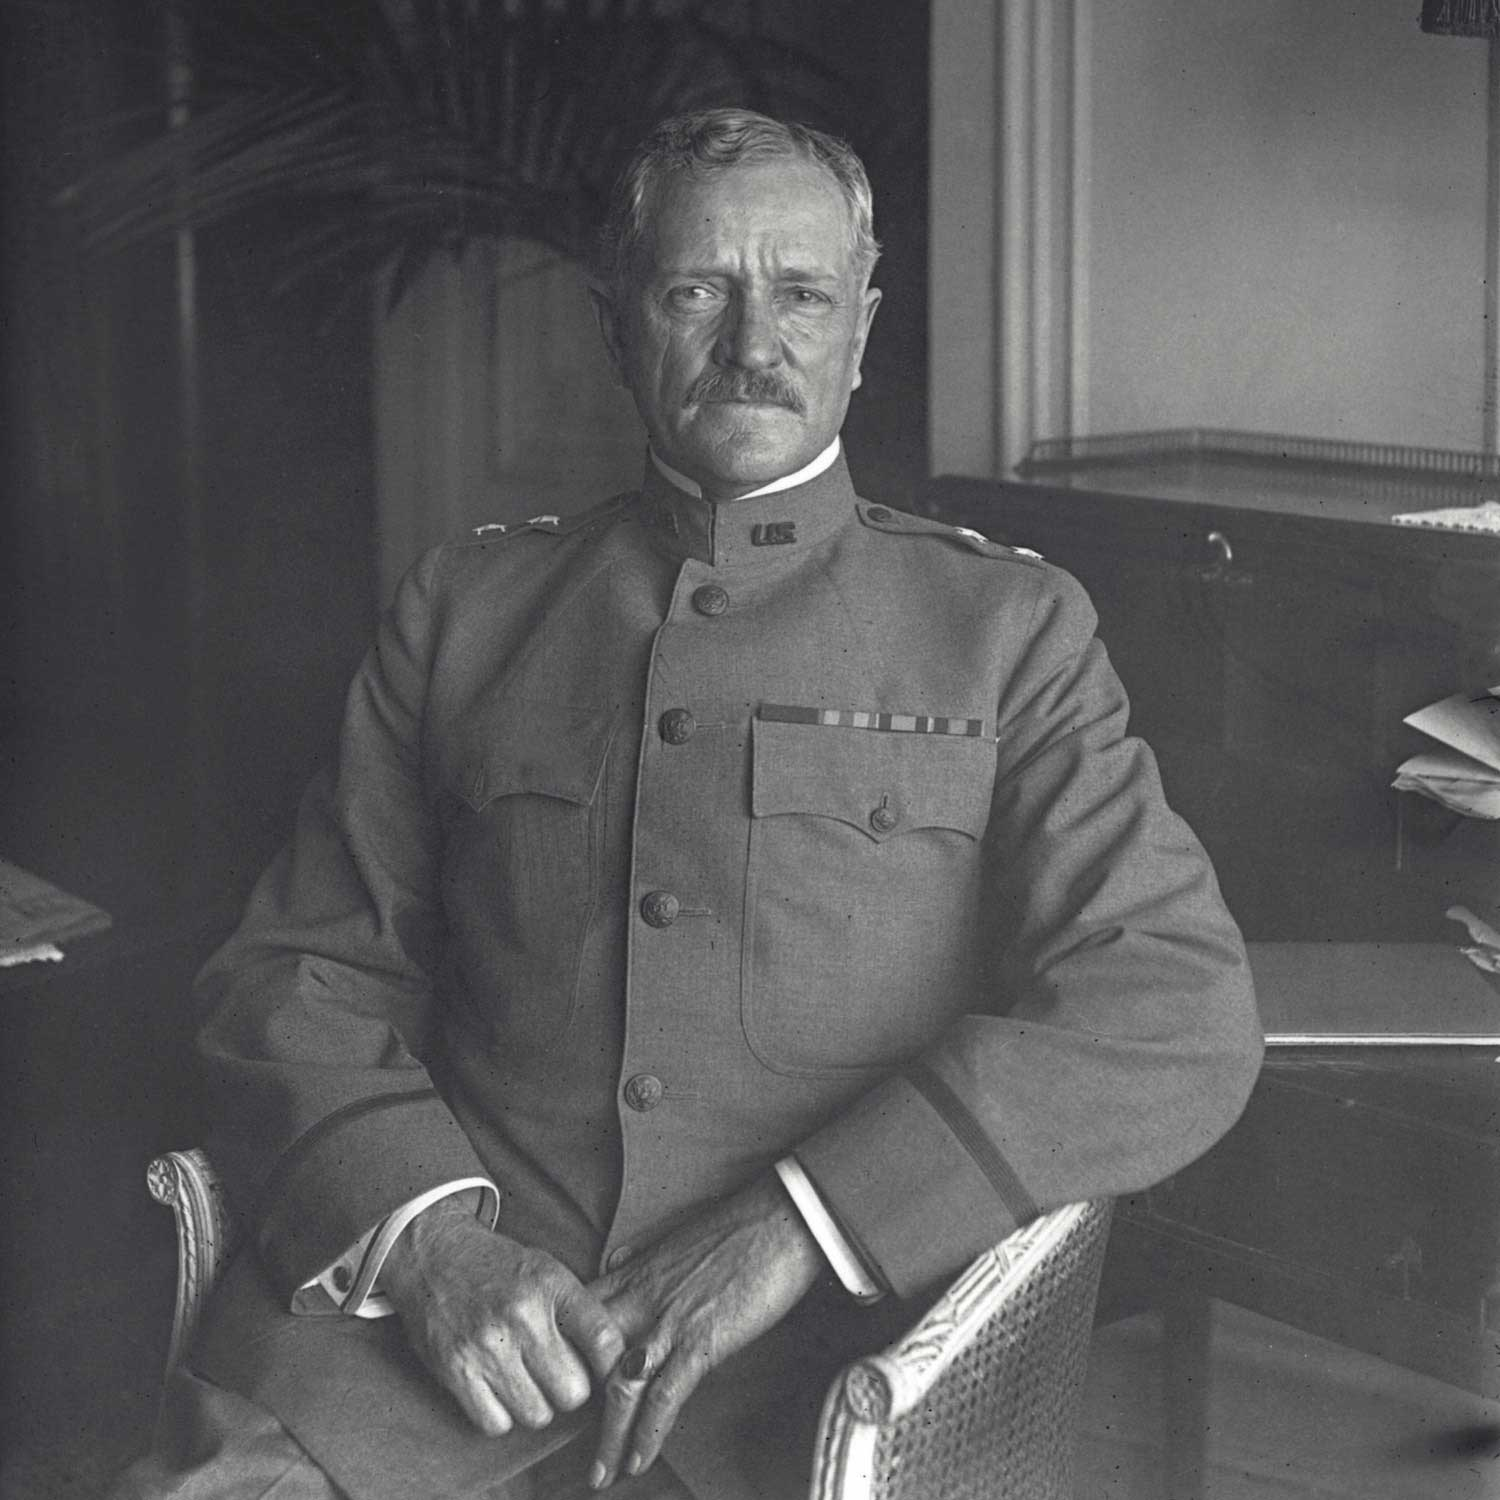 General John Pershing, one of the very first owners of the Cartier Tank